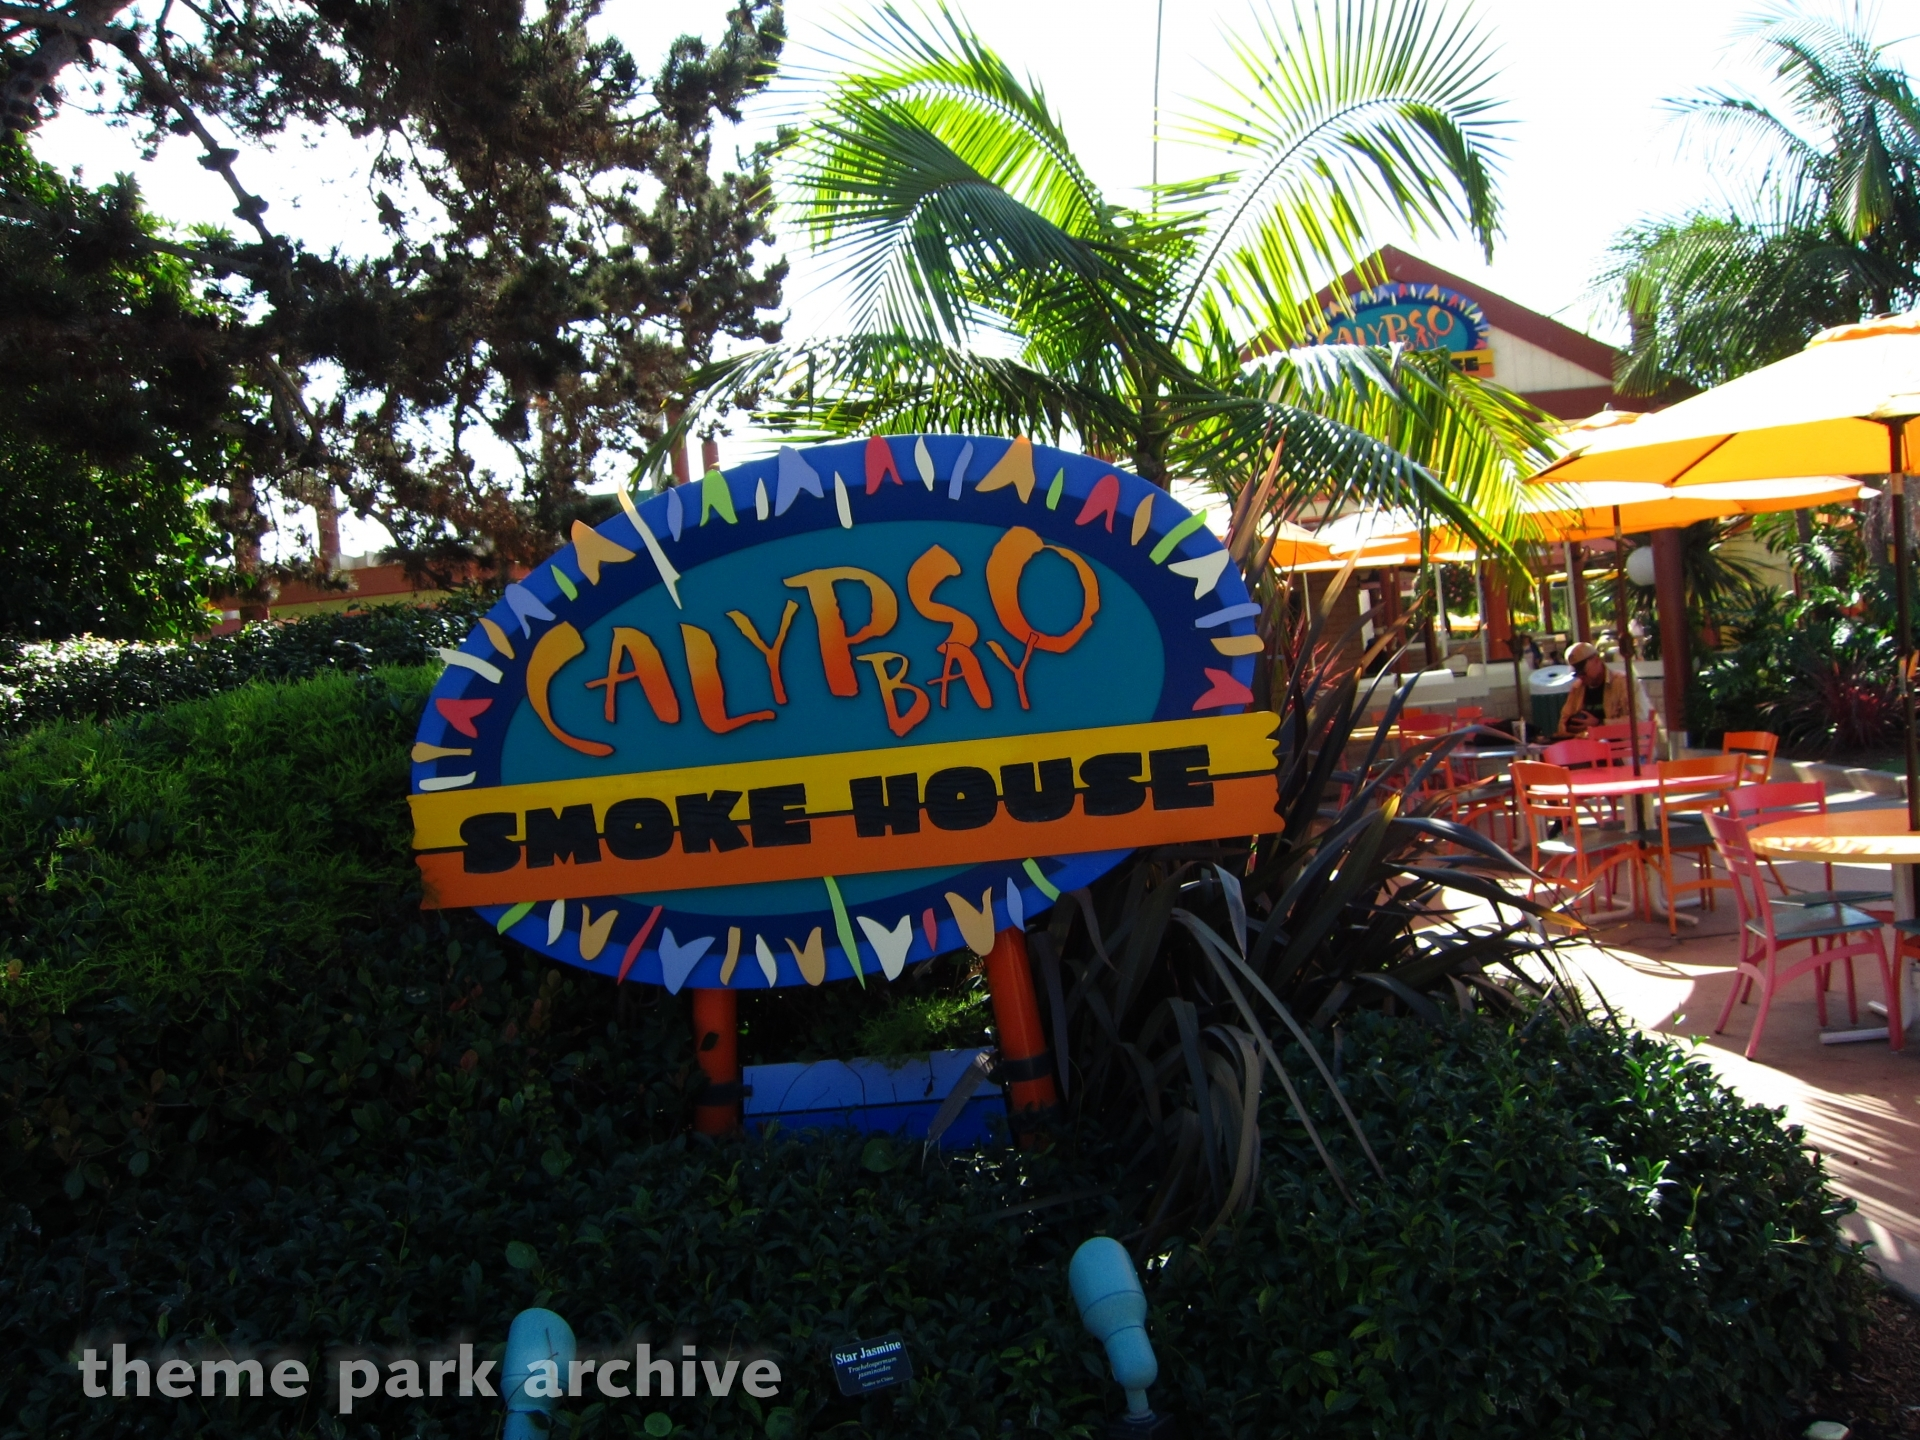 Calypso Smokehouse at Sea World San Diego